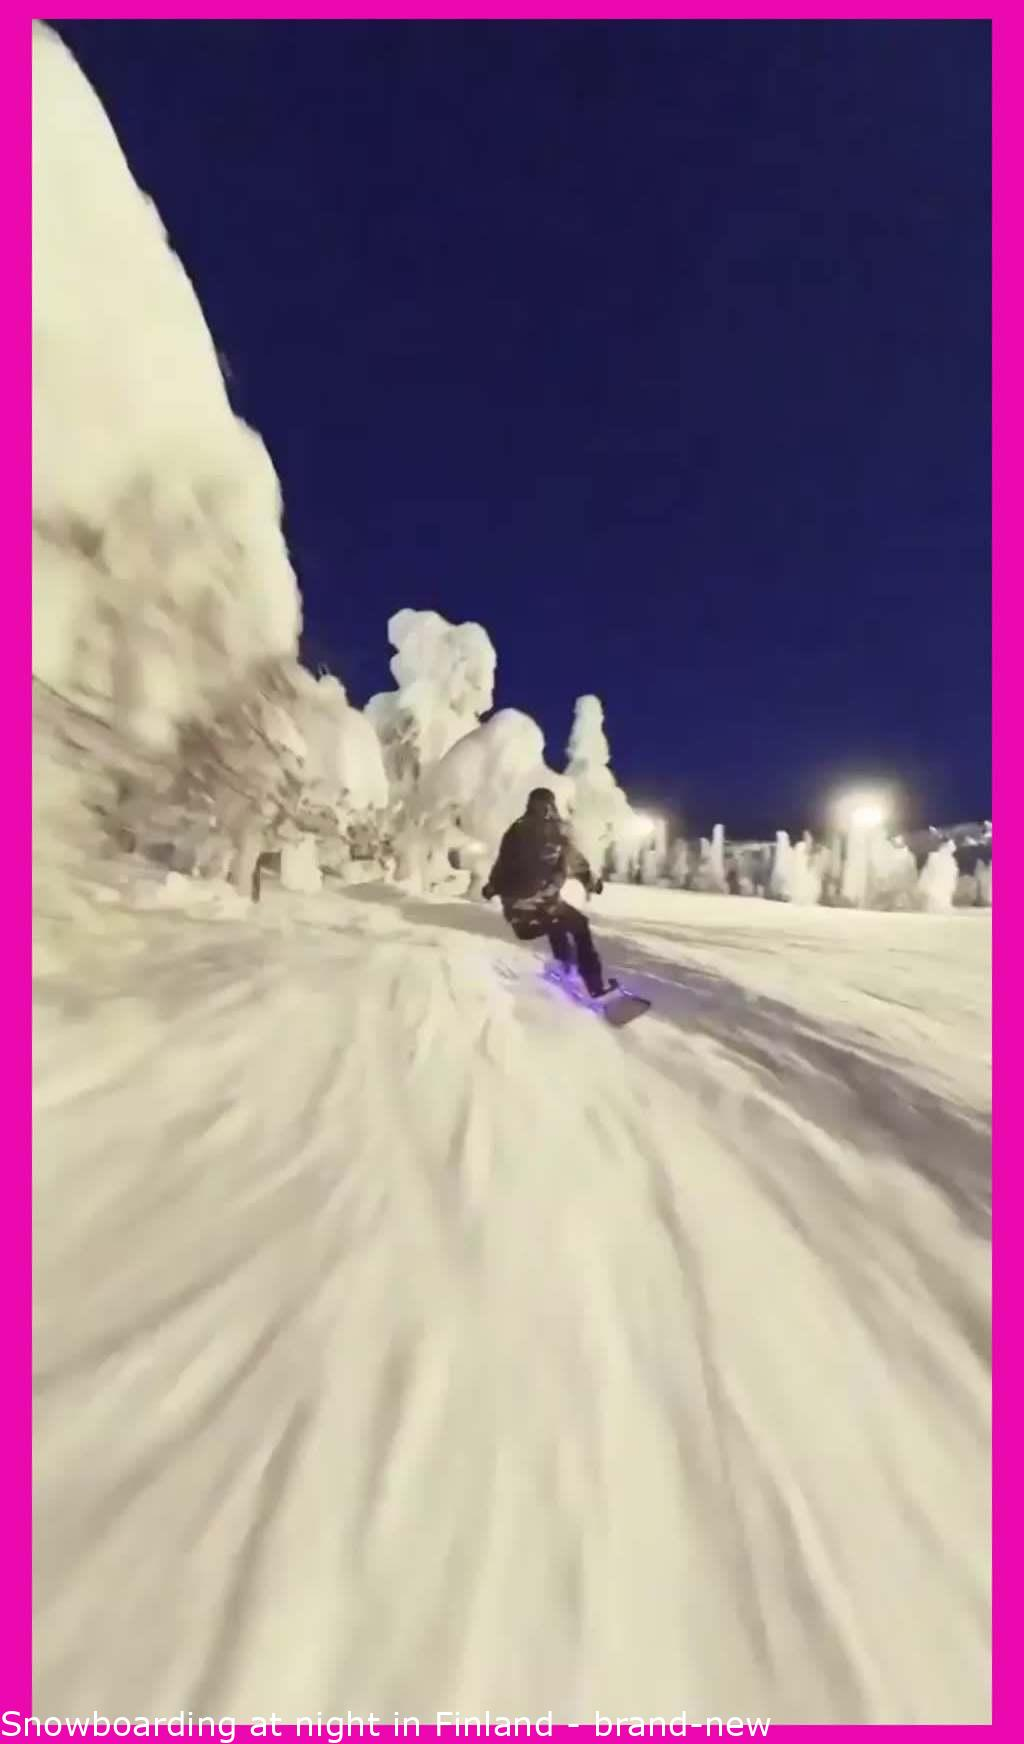 Snowboarding at night in Finland